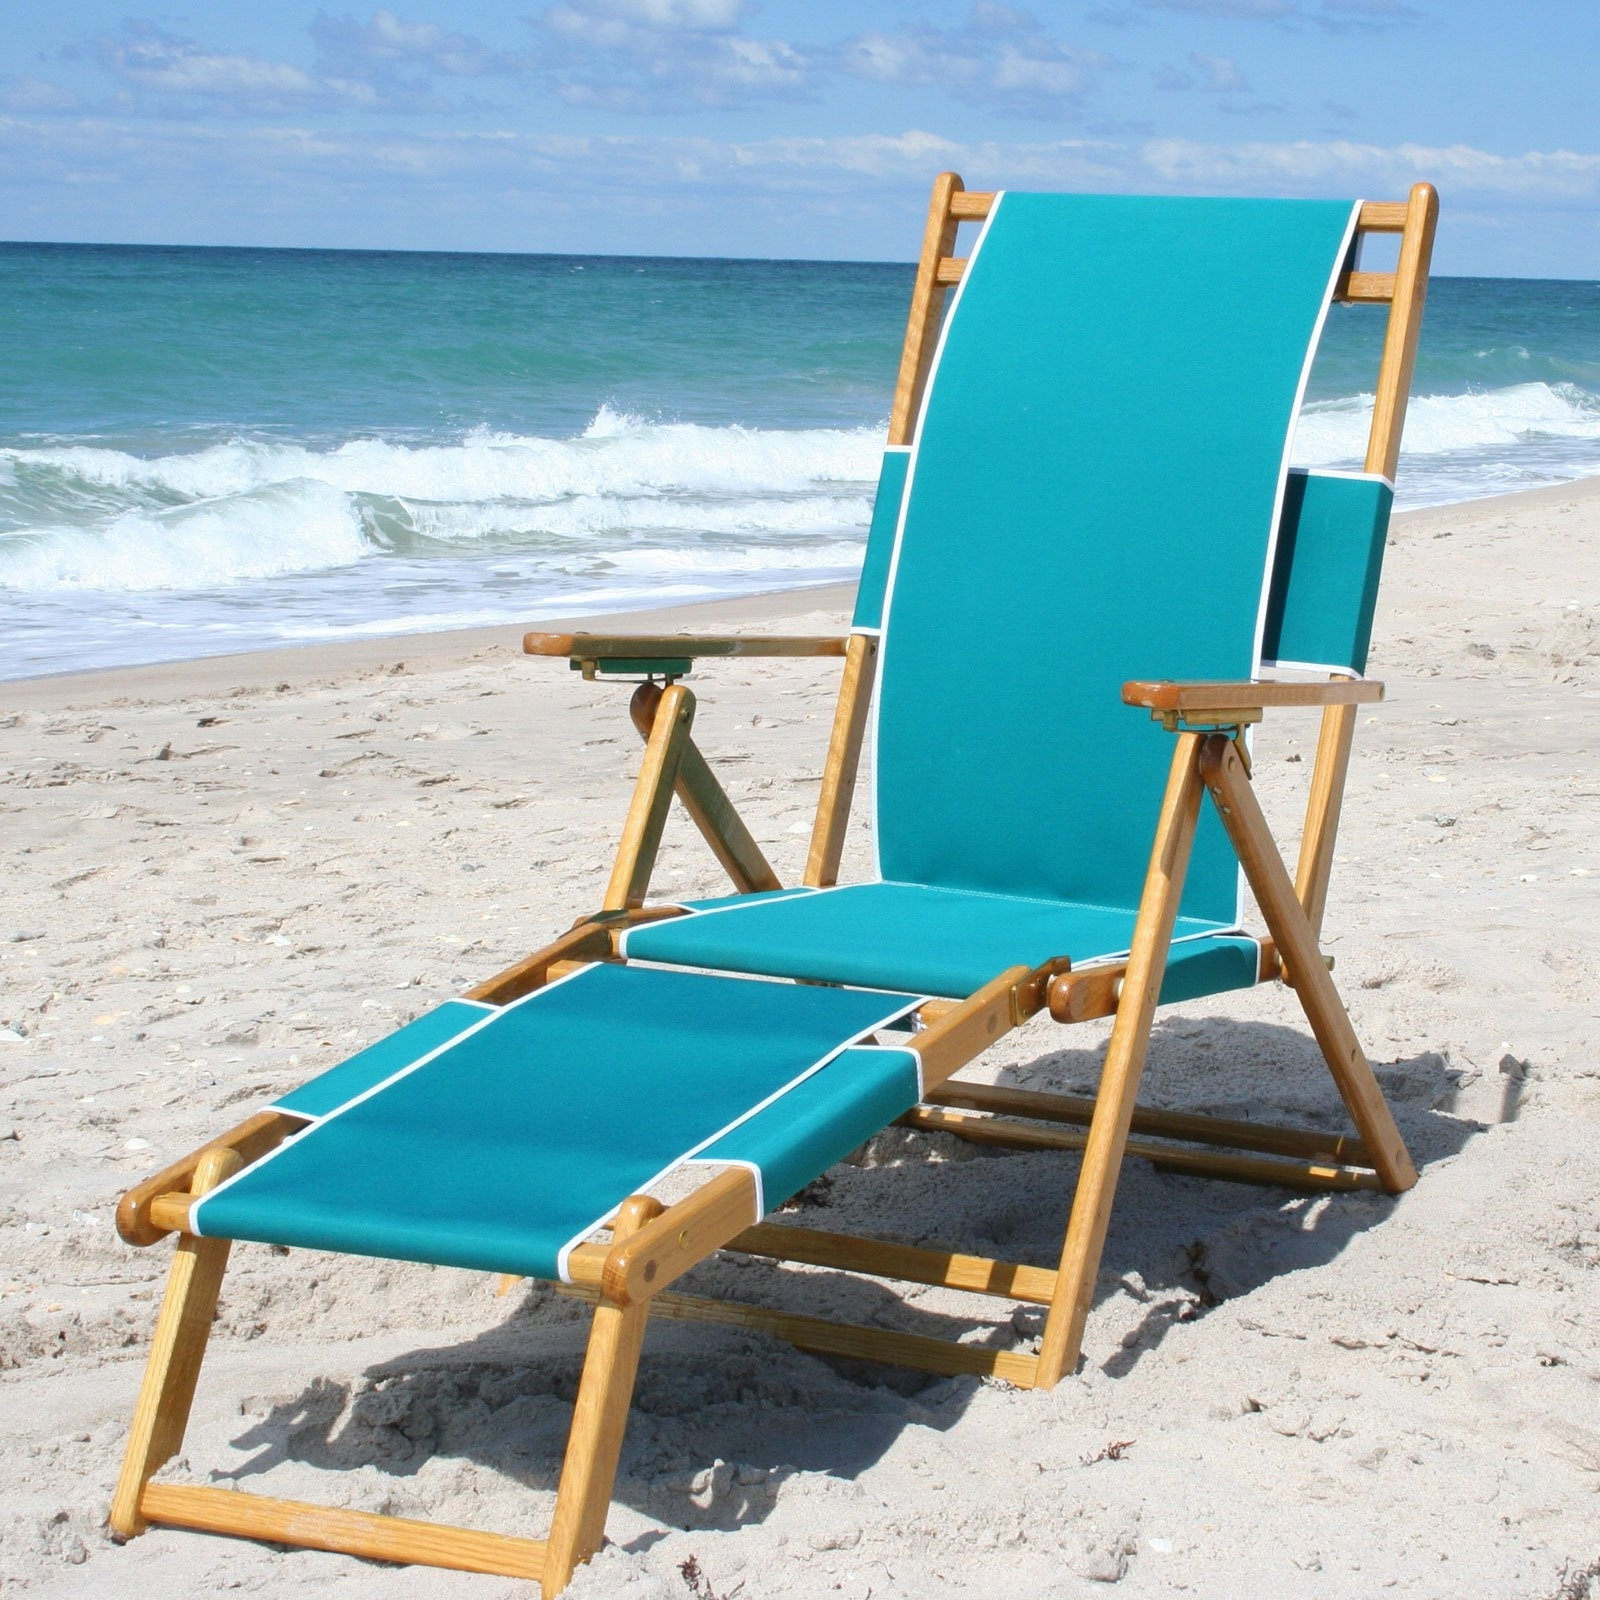 Picture 21 Of 39 – Chaise Lounge Beach Chair Luxury Stylish Beach Throughout Fashionable Ostrich Chaise Lounge Chairs (View 9 of 15)